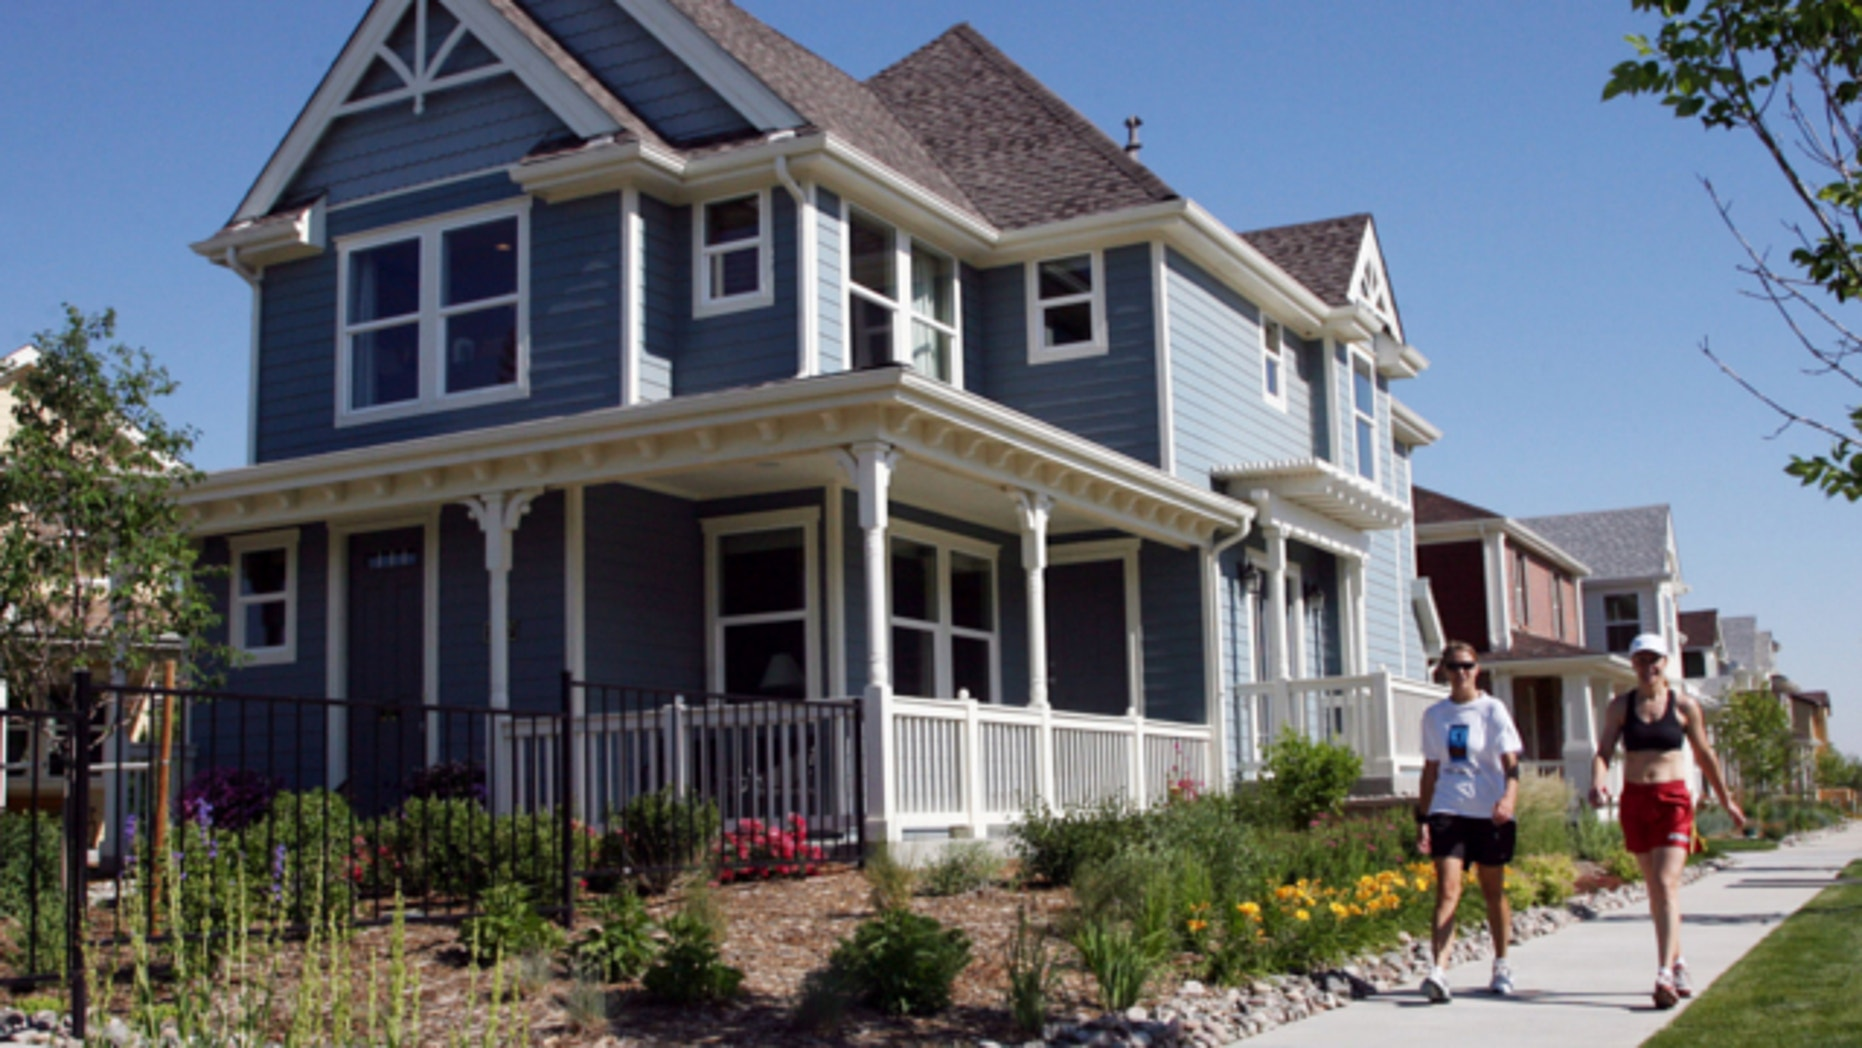 FILE: June 14, 2006: A model home by KB Homes in the Stapleton Coach House development is shown on the site of the defunct Stapleton International Airport in Denver, Colo.